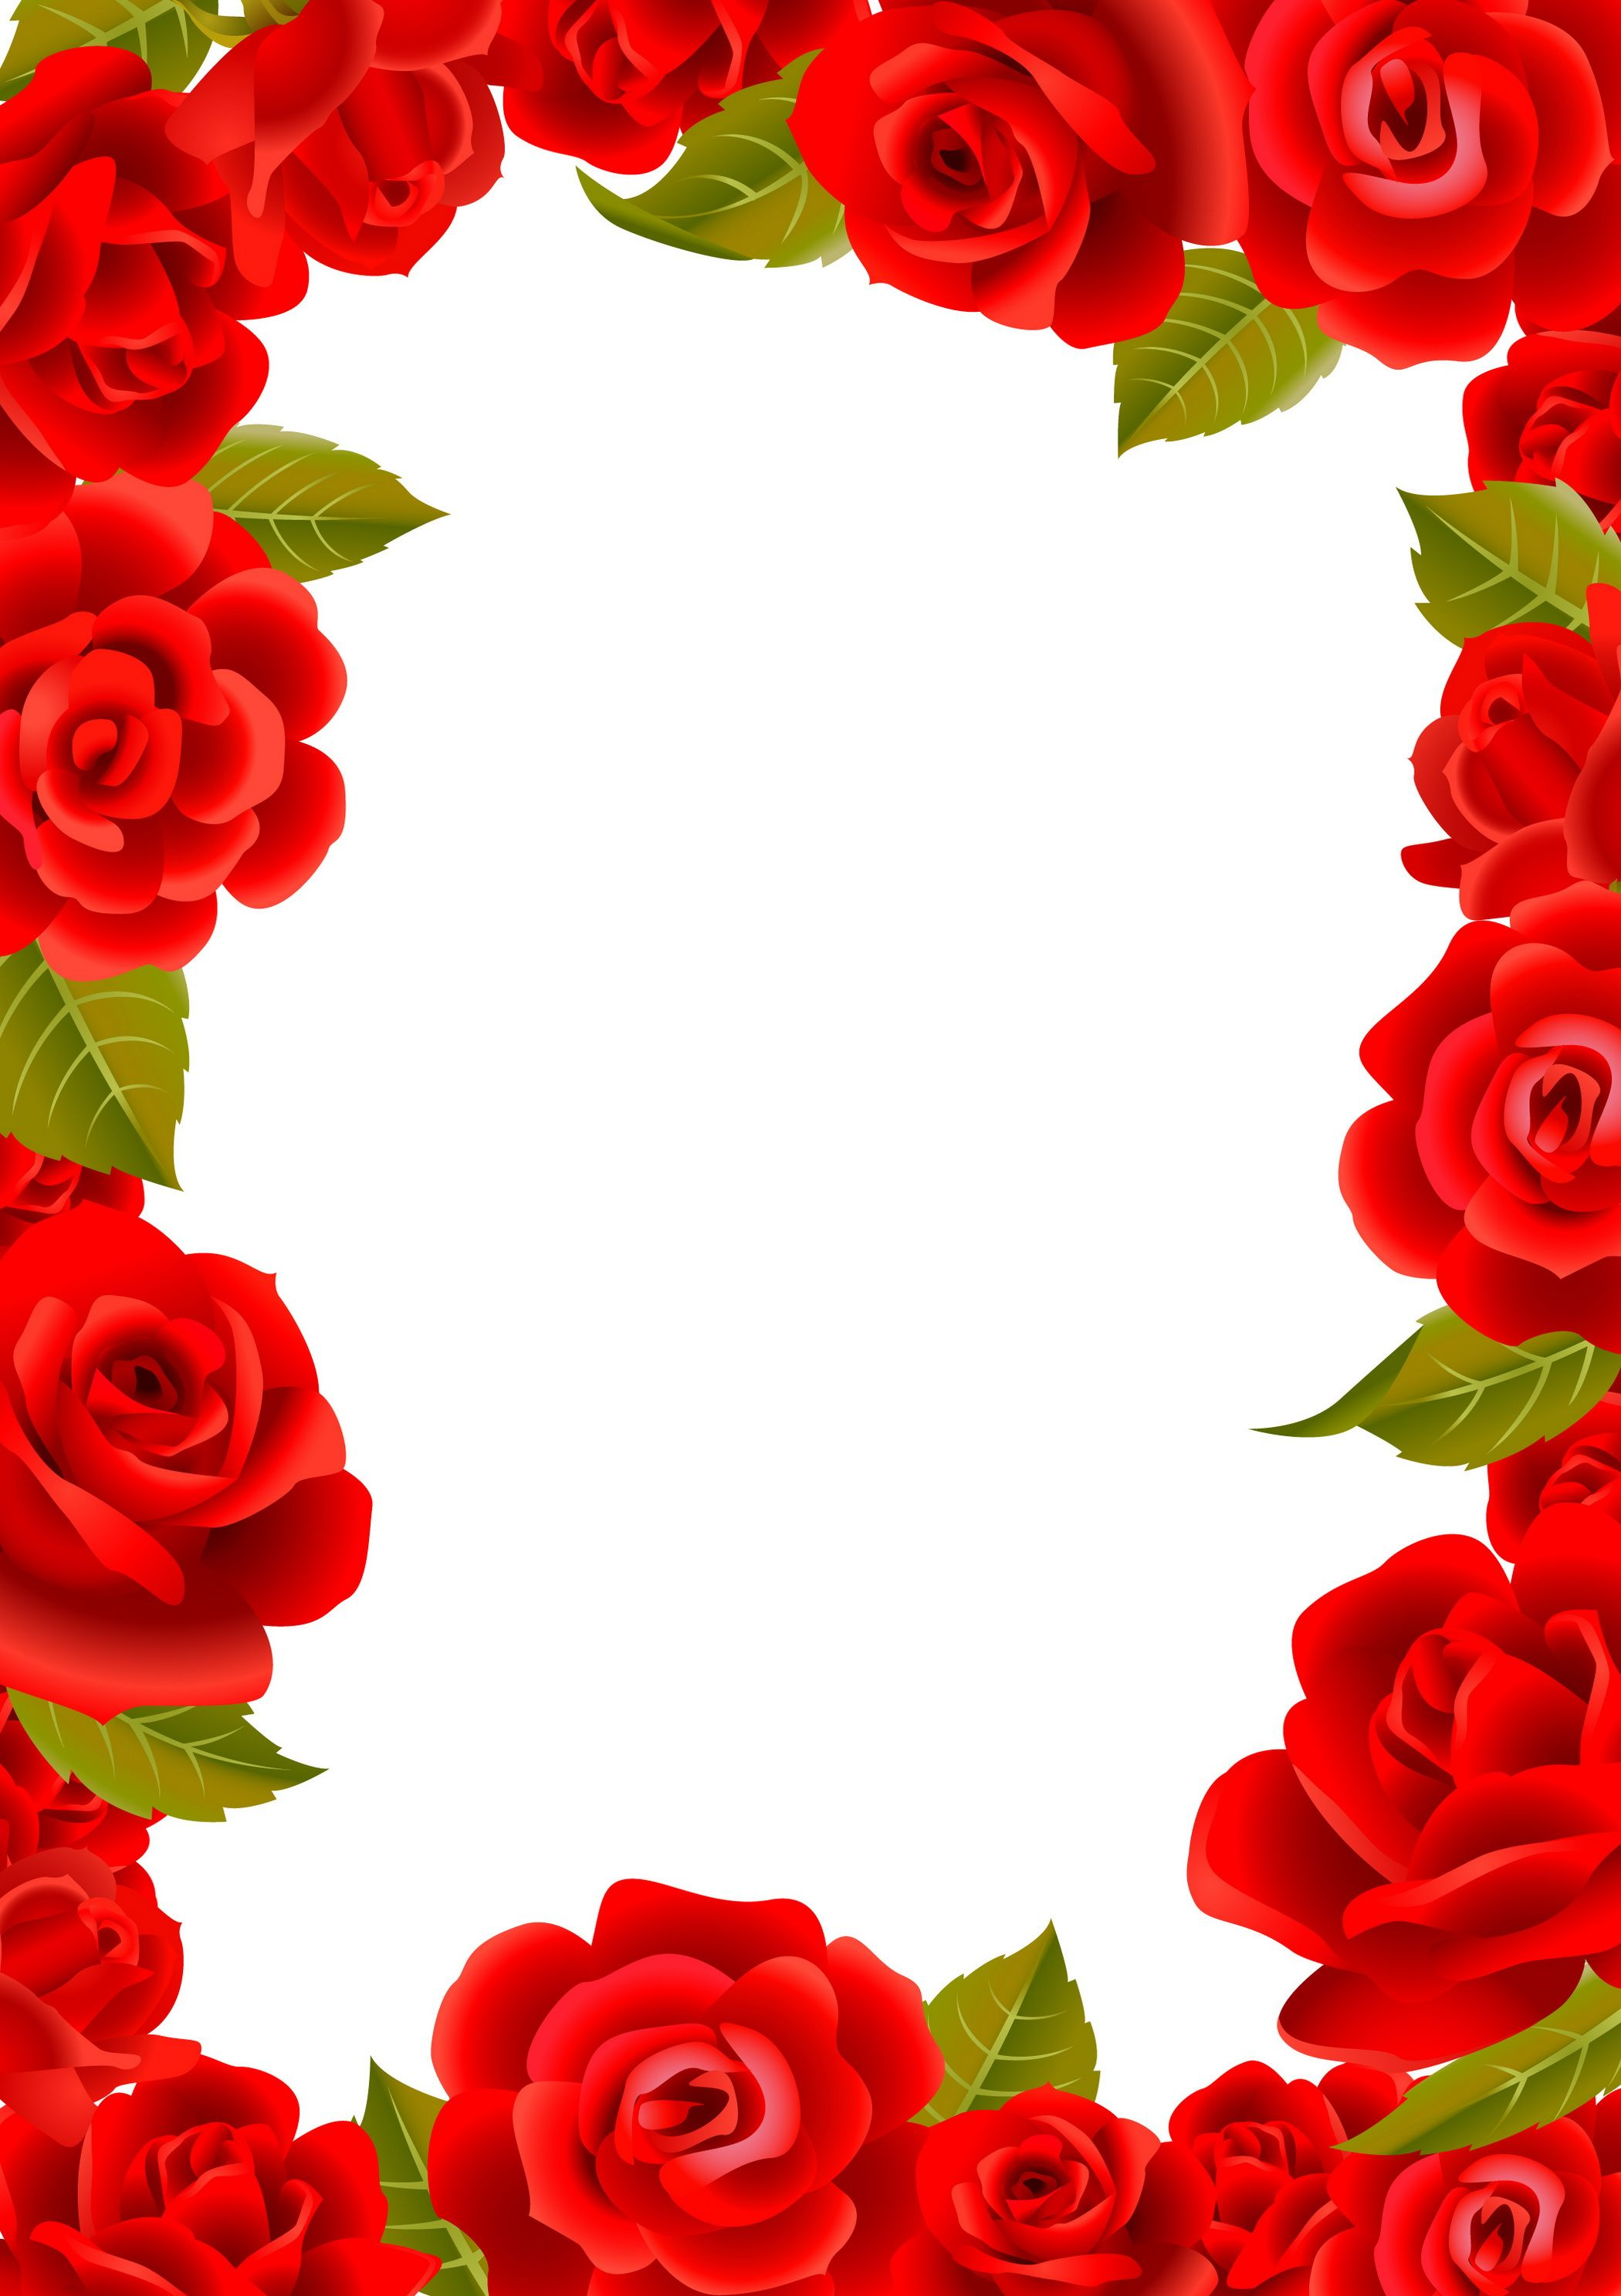 Red Rose Ring Red Roses Background Flower Backgrounds